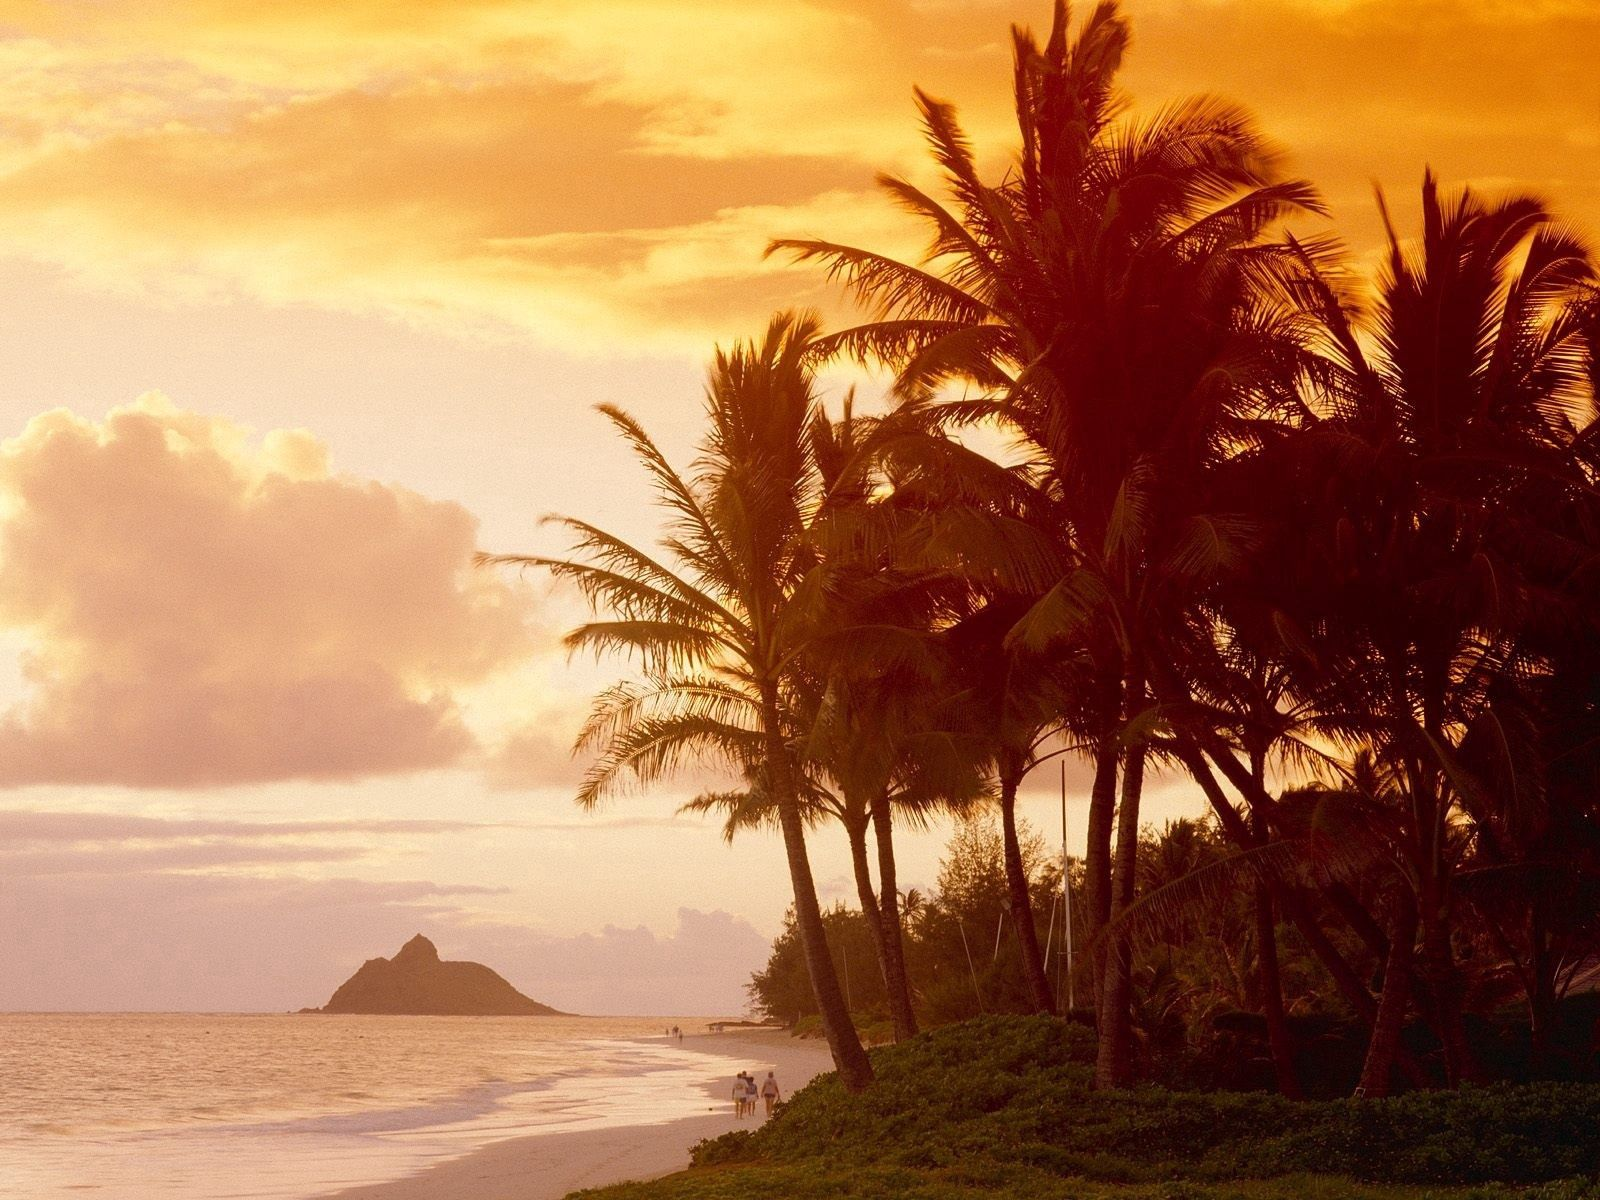 64785 download wallpaper Nature, Shore, Bank, Sunlight, Sunset, Evening, People, Palms screensavers and pictures for free